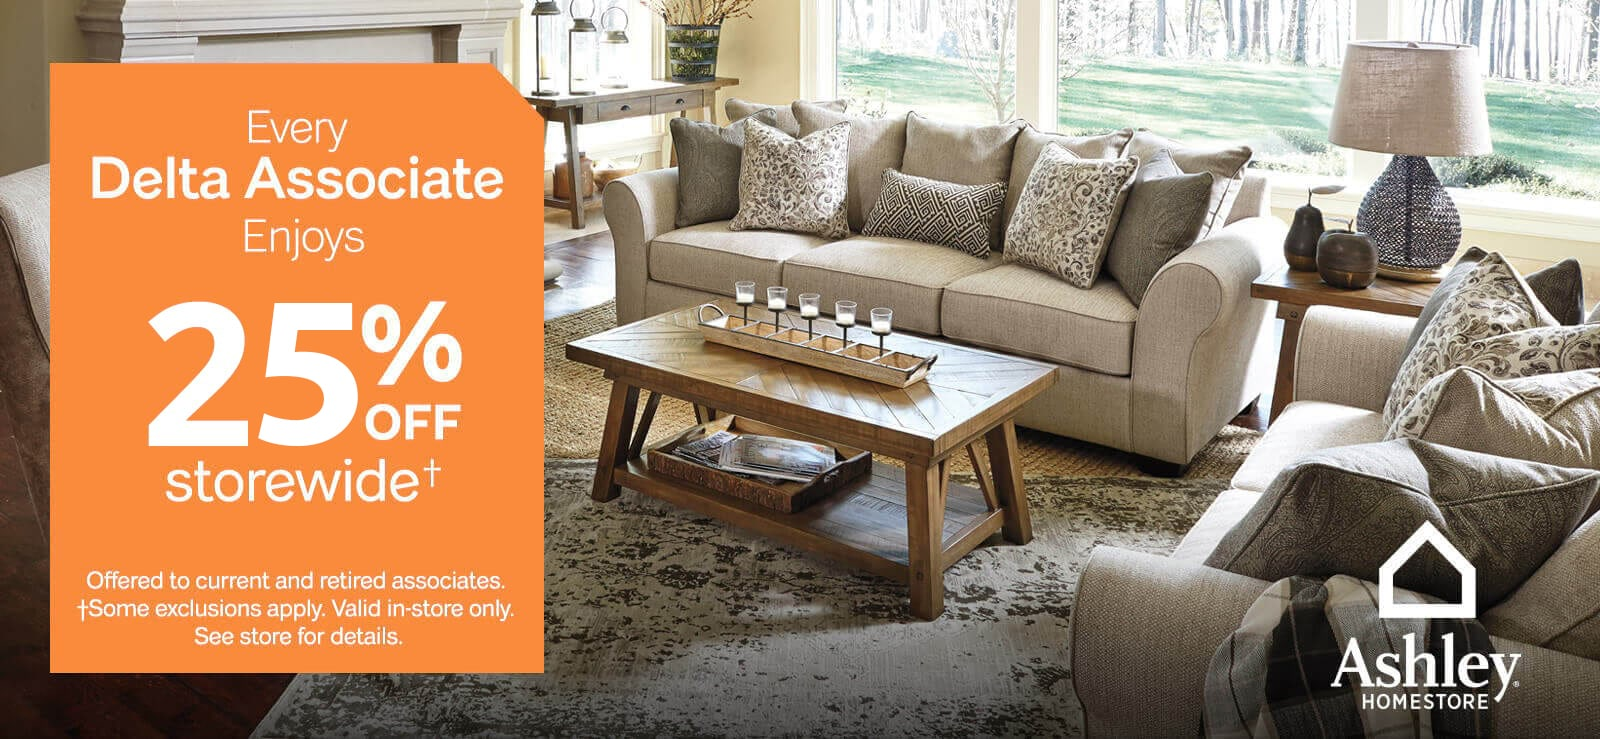 Ashley Homestore Partnership With Delta Ashley Furniture Homestore